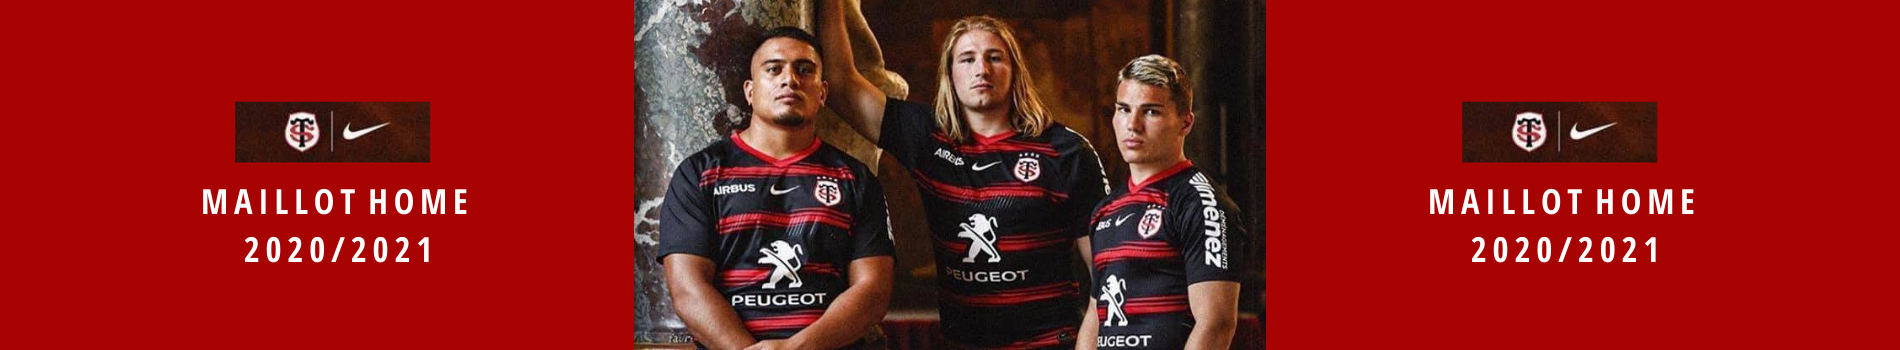 maillot home rugby toulon